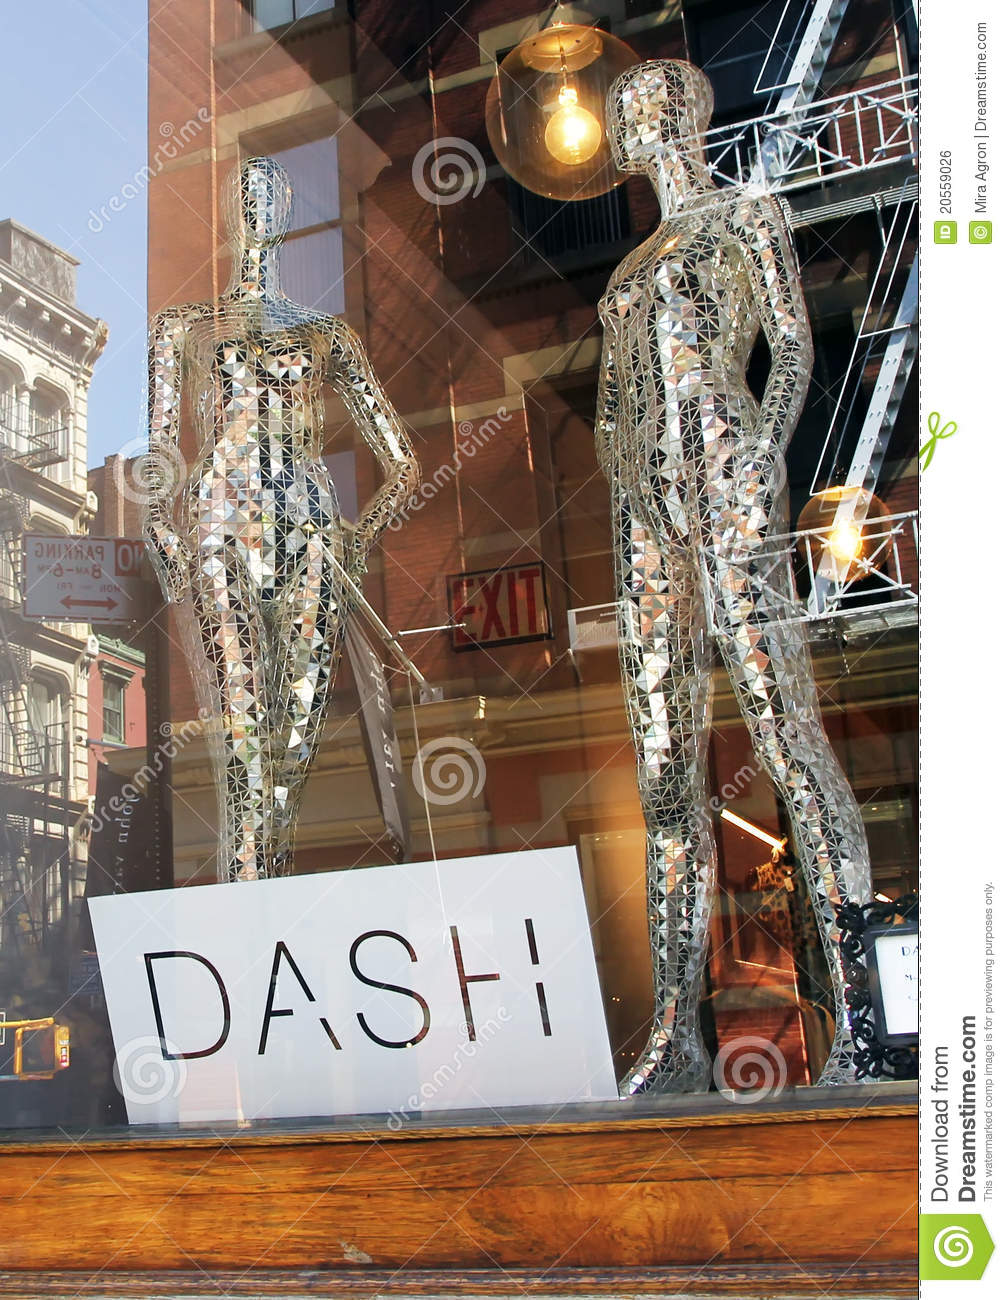 The dash clothing Store is a place to buy unique clothing and